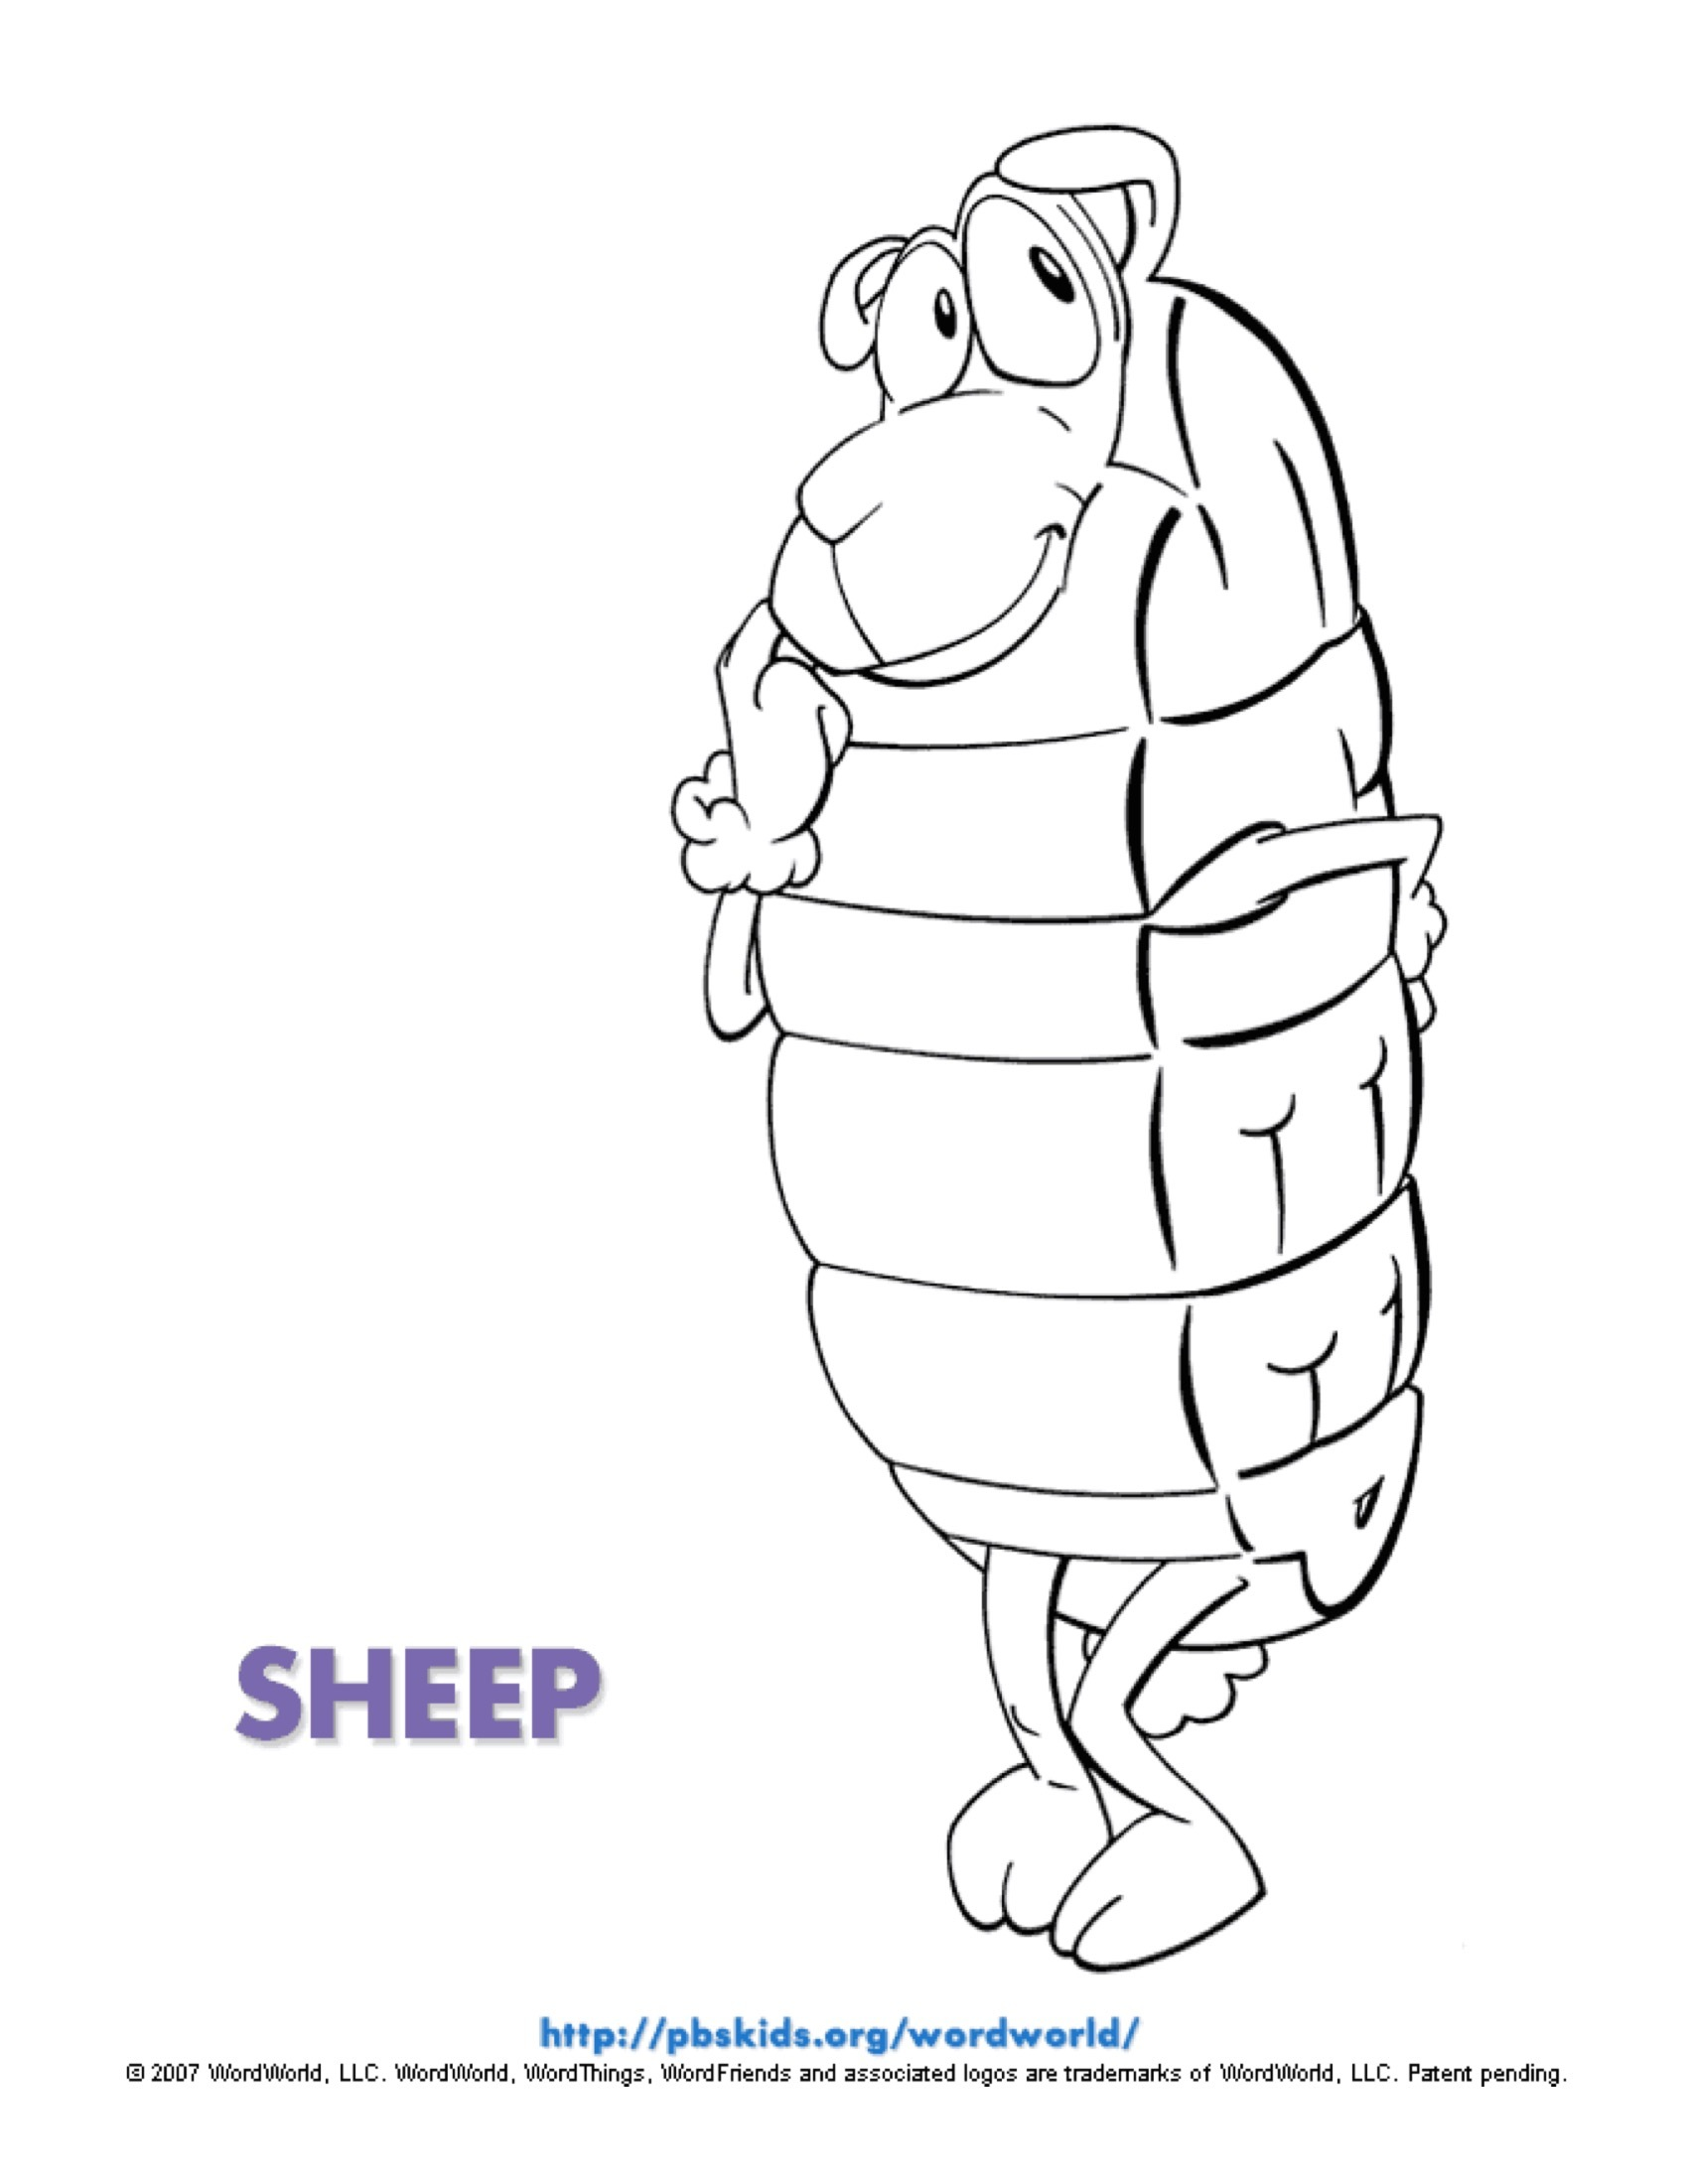 Sheep Coloring Page | Kids Coloring Pages | PBS KIDS for Parents